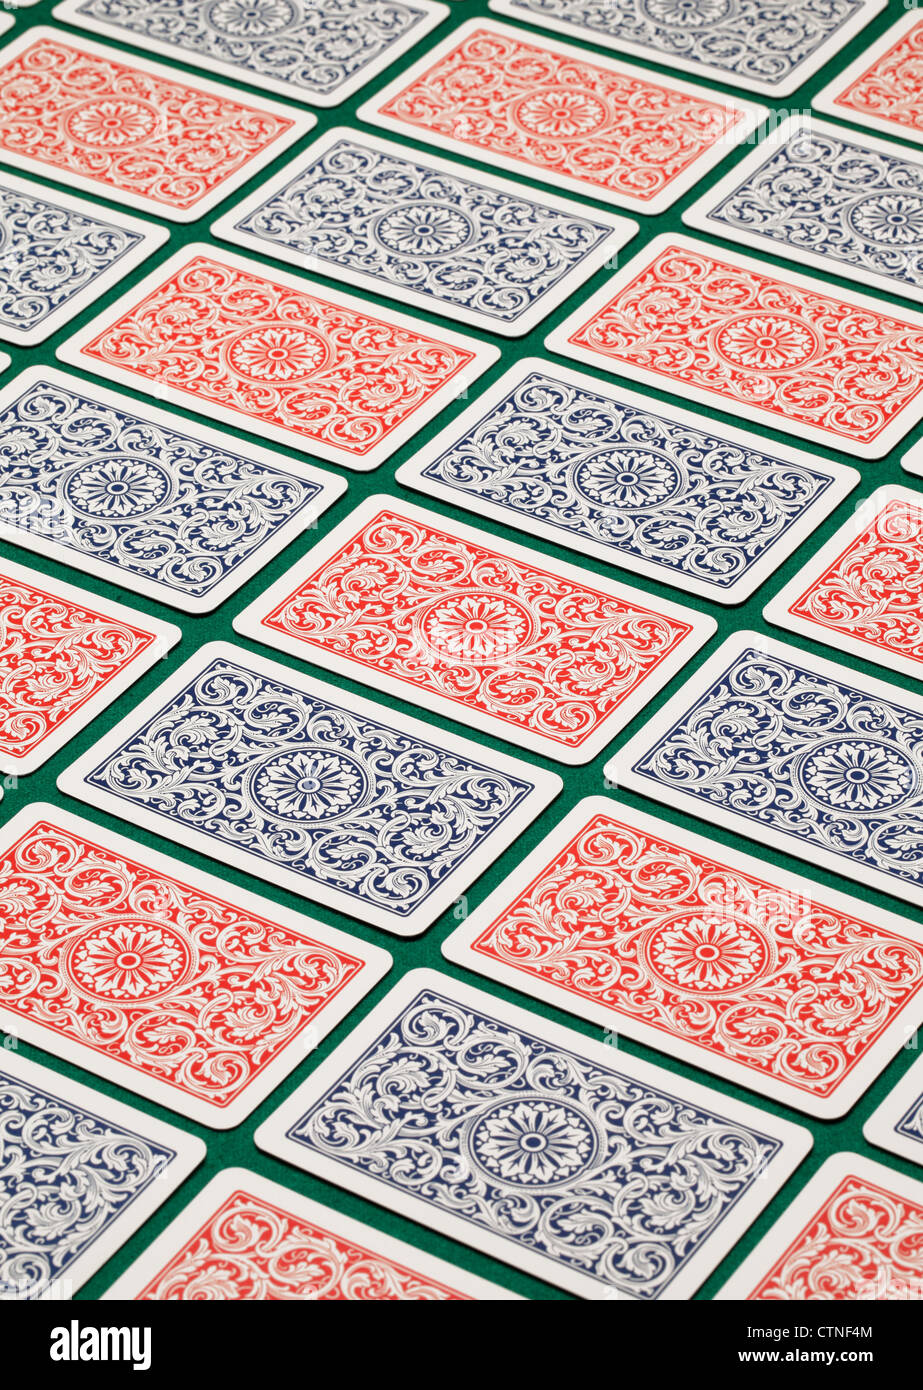 Playing cards on a green table. - Stock Image